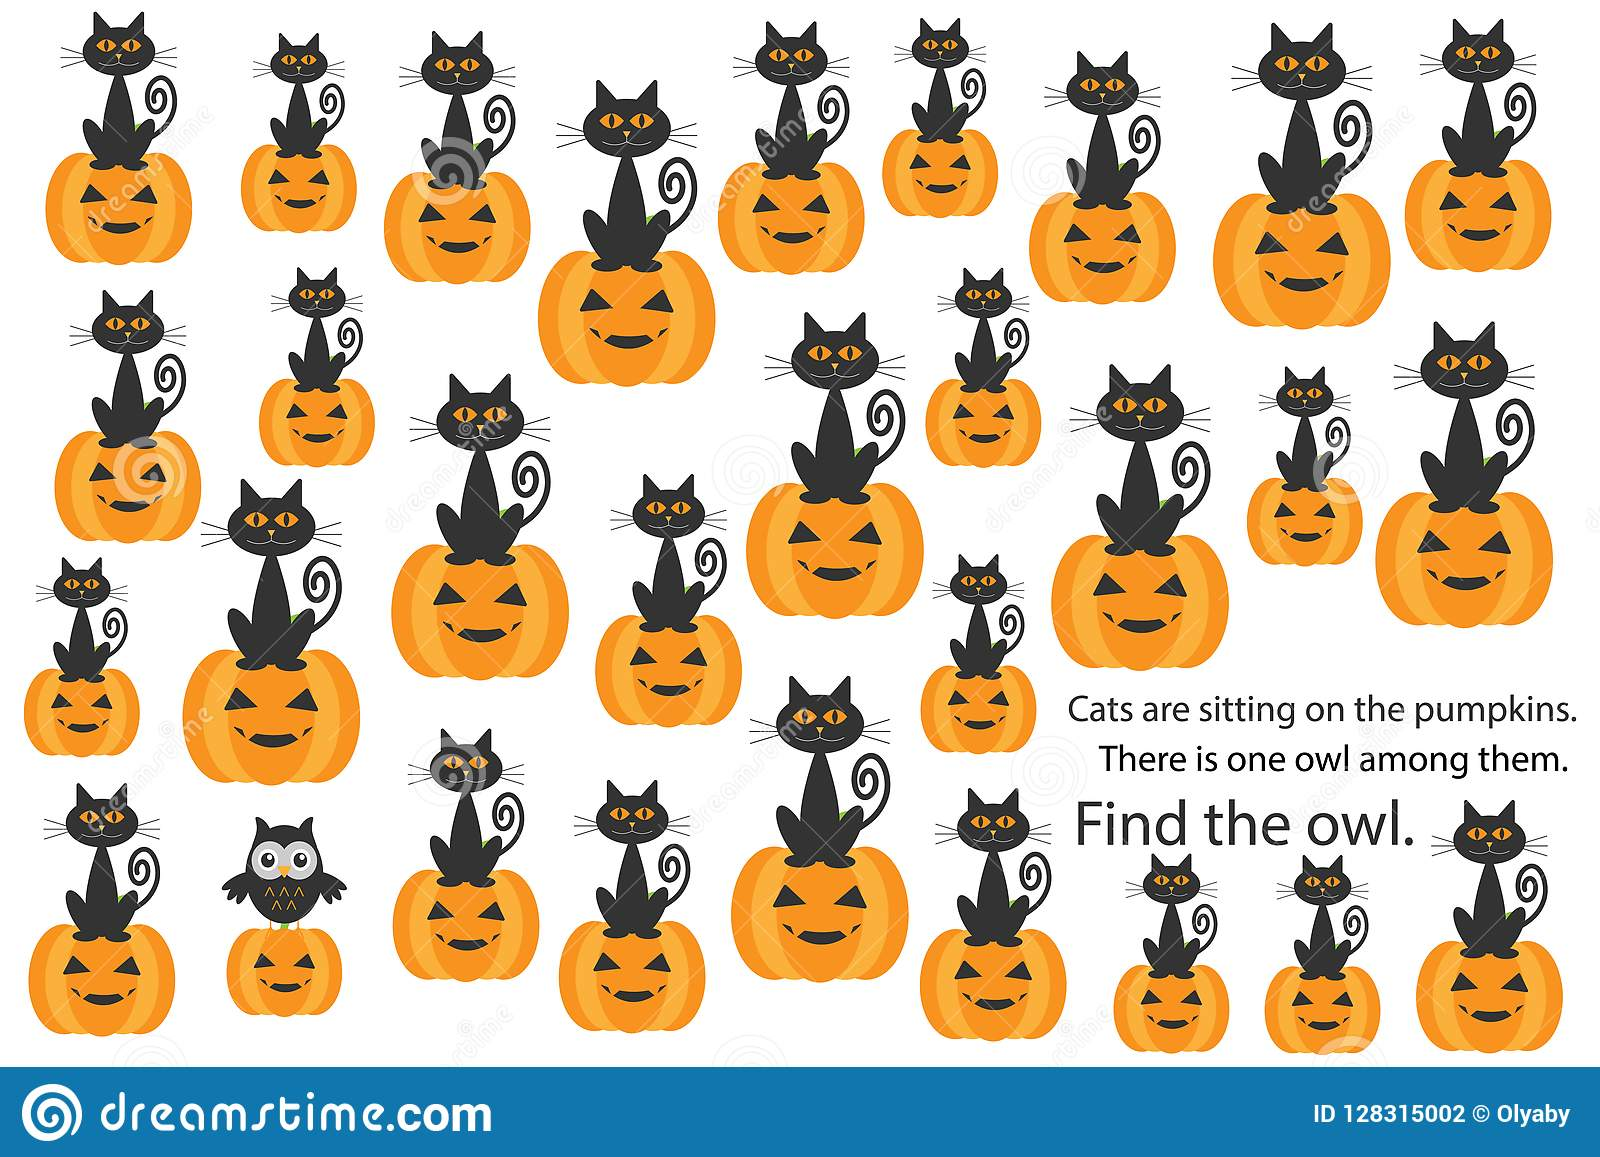 Find Owl Among Cats On Pumpkins Halloween Fun Education